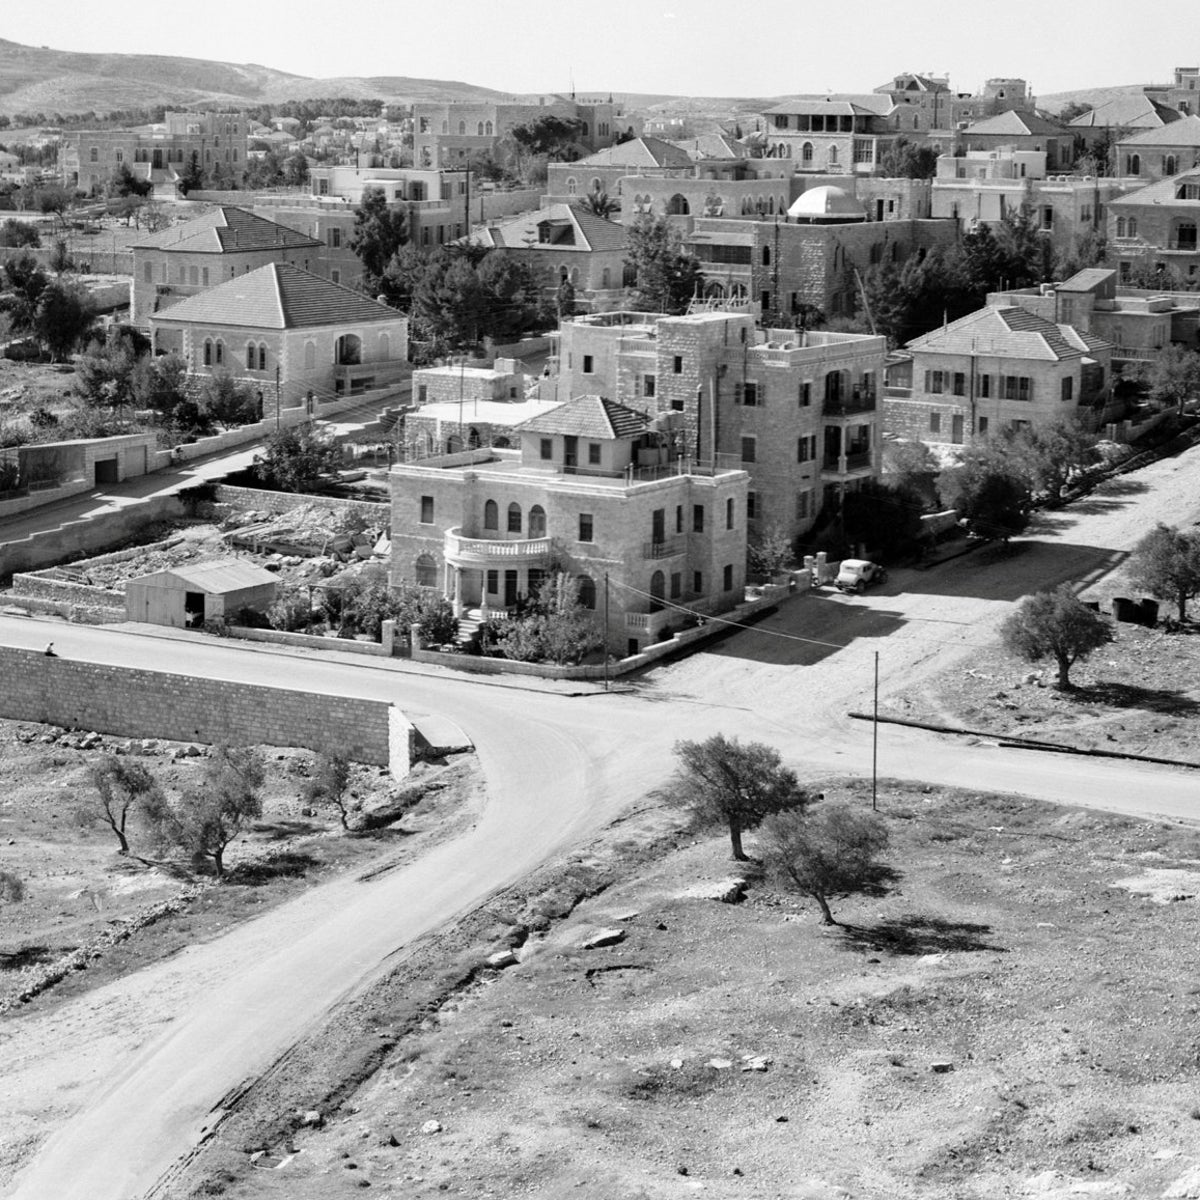 The Talbieh neighborhood of Jerusalem in the 1920s. It has expanded somewhat over the past century.